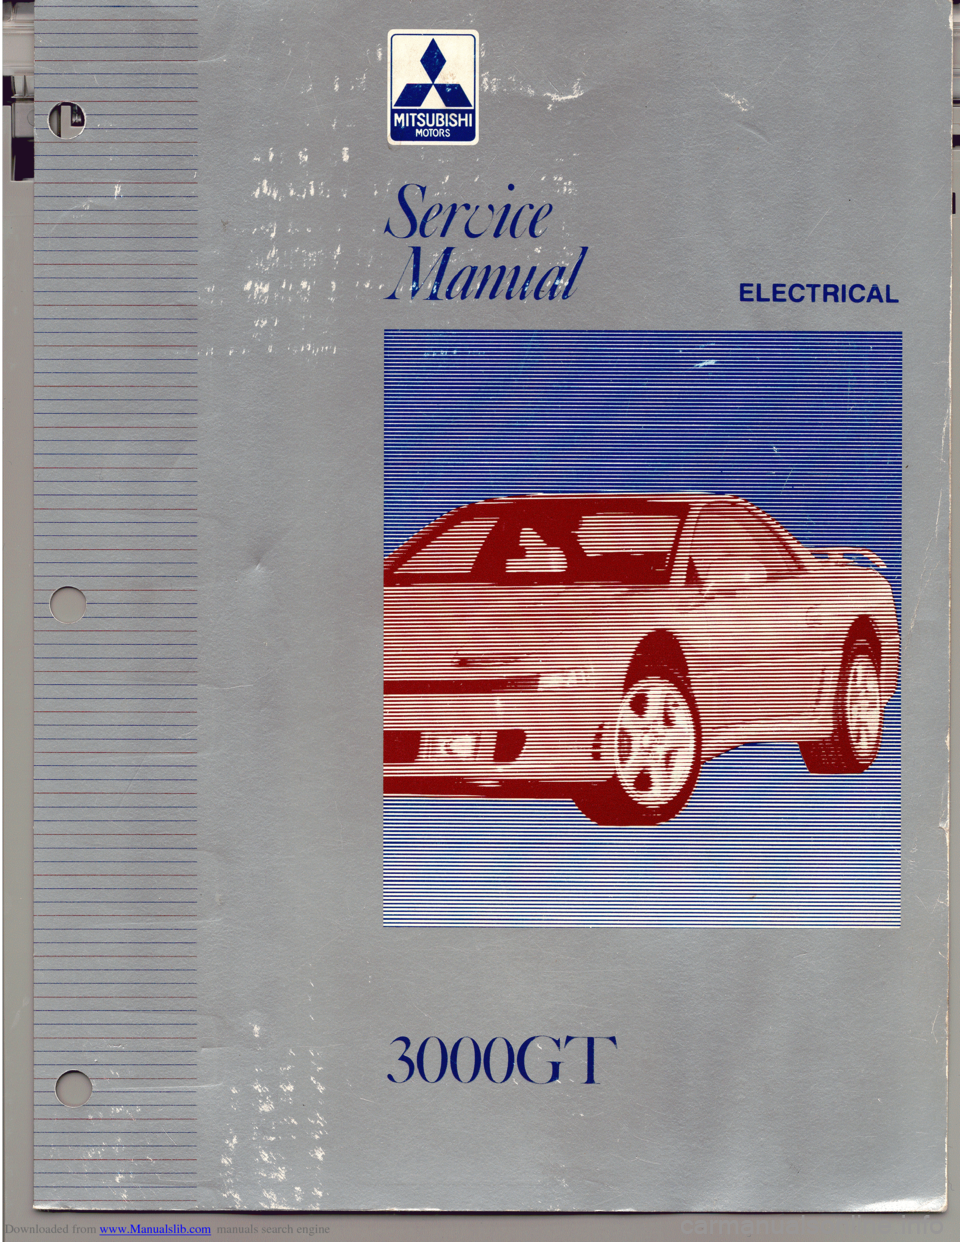 MITSUBISHI 3000GT 1993 2.G Workshop Manual, Page 1